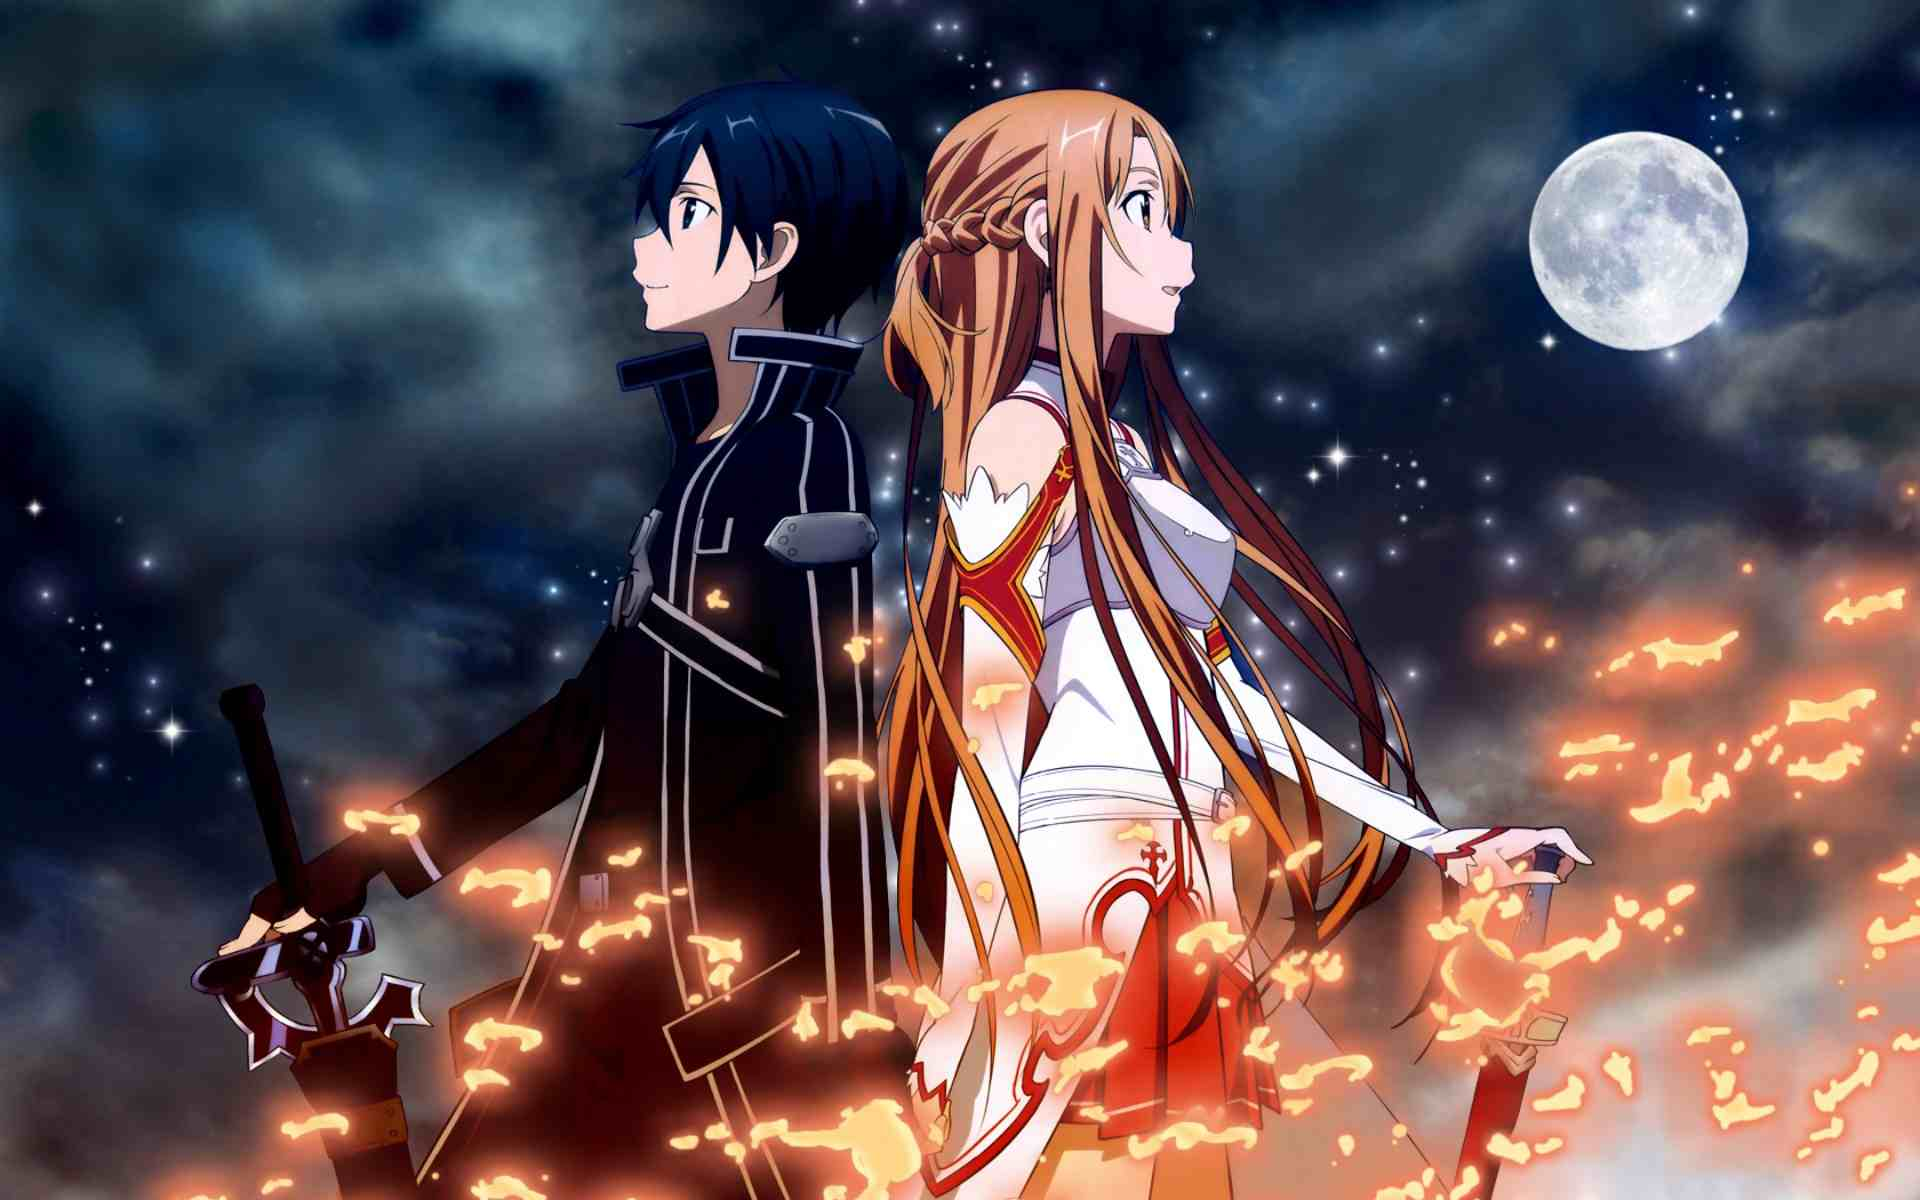 Sword art online underworld release date 16 anime wallpaper and full hd wallpapers  high quality desktop wallpapers